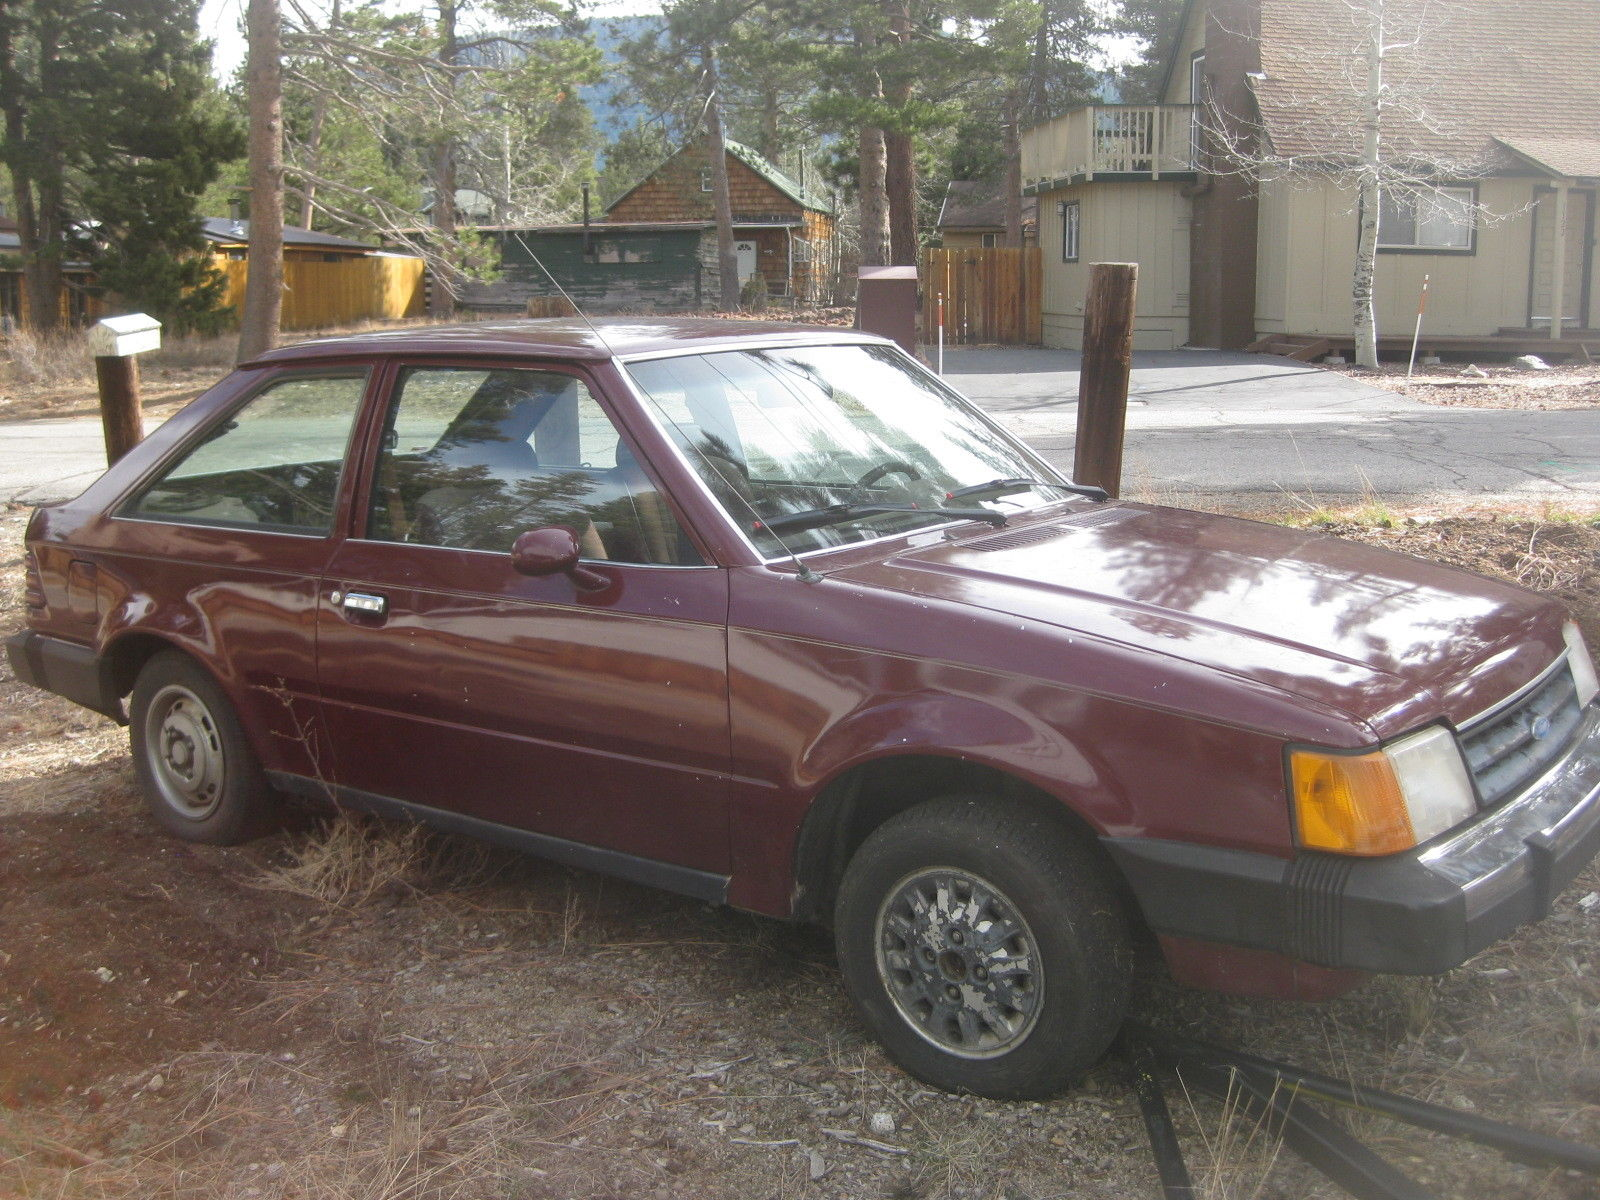 1986 Ford Escort MPG - Actual MPG from 1 1986 - Fuelly